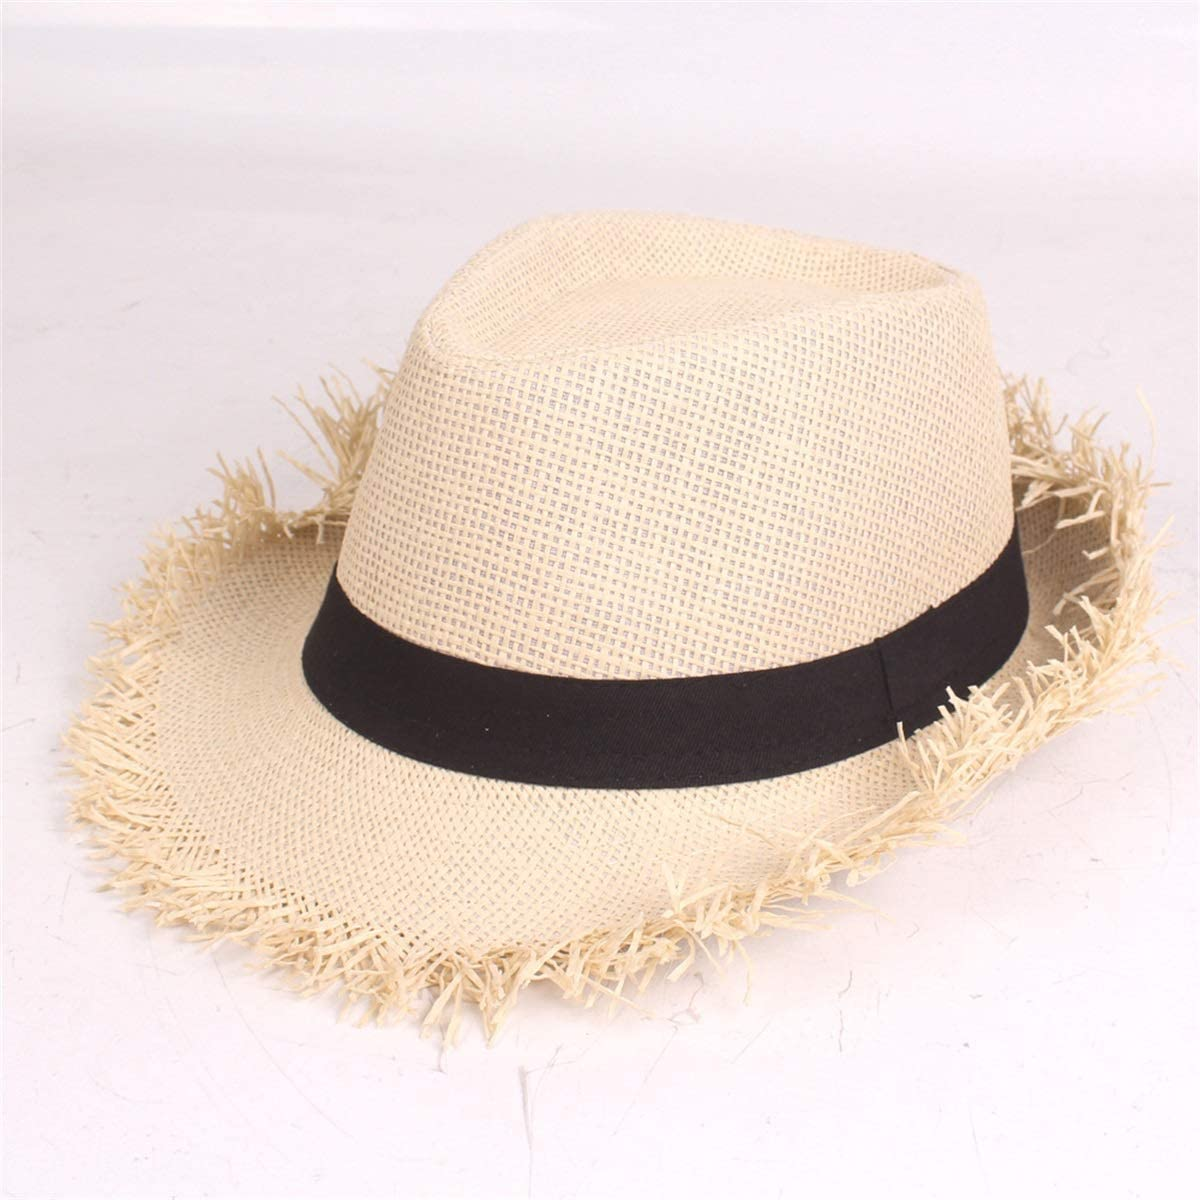 KSDJSA Sun Hat Solid Color Travel Topee Round Holiday Sun Hat Beach Cowboy Hat S